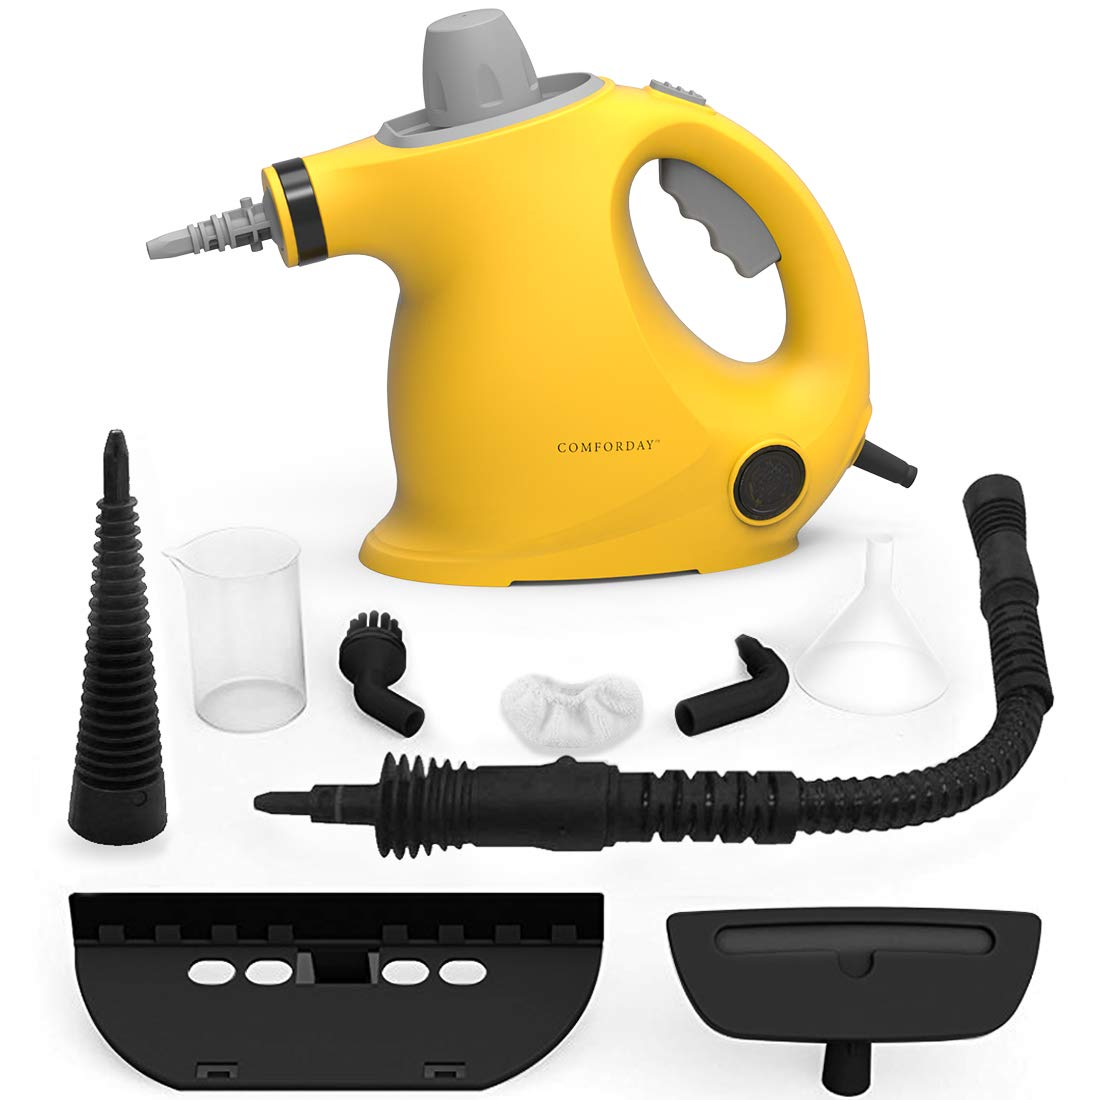 Comforday Multi-Purpose Handheld Pressurized Steam Cleaner with 9-Piece Accessories for Stain Removal, Steamer, Carpets, Curtains, Car Seats, Kitchen Surface & Much More, Yellow by Comforday